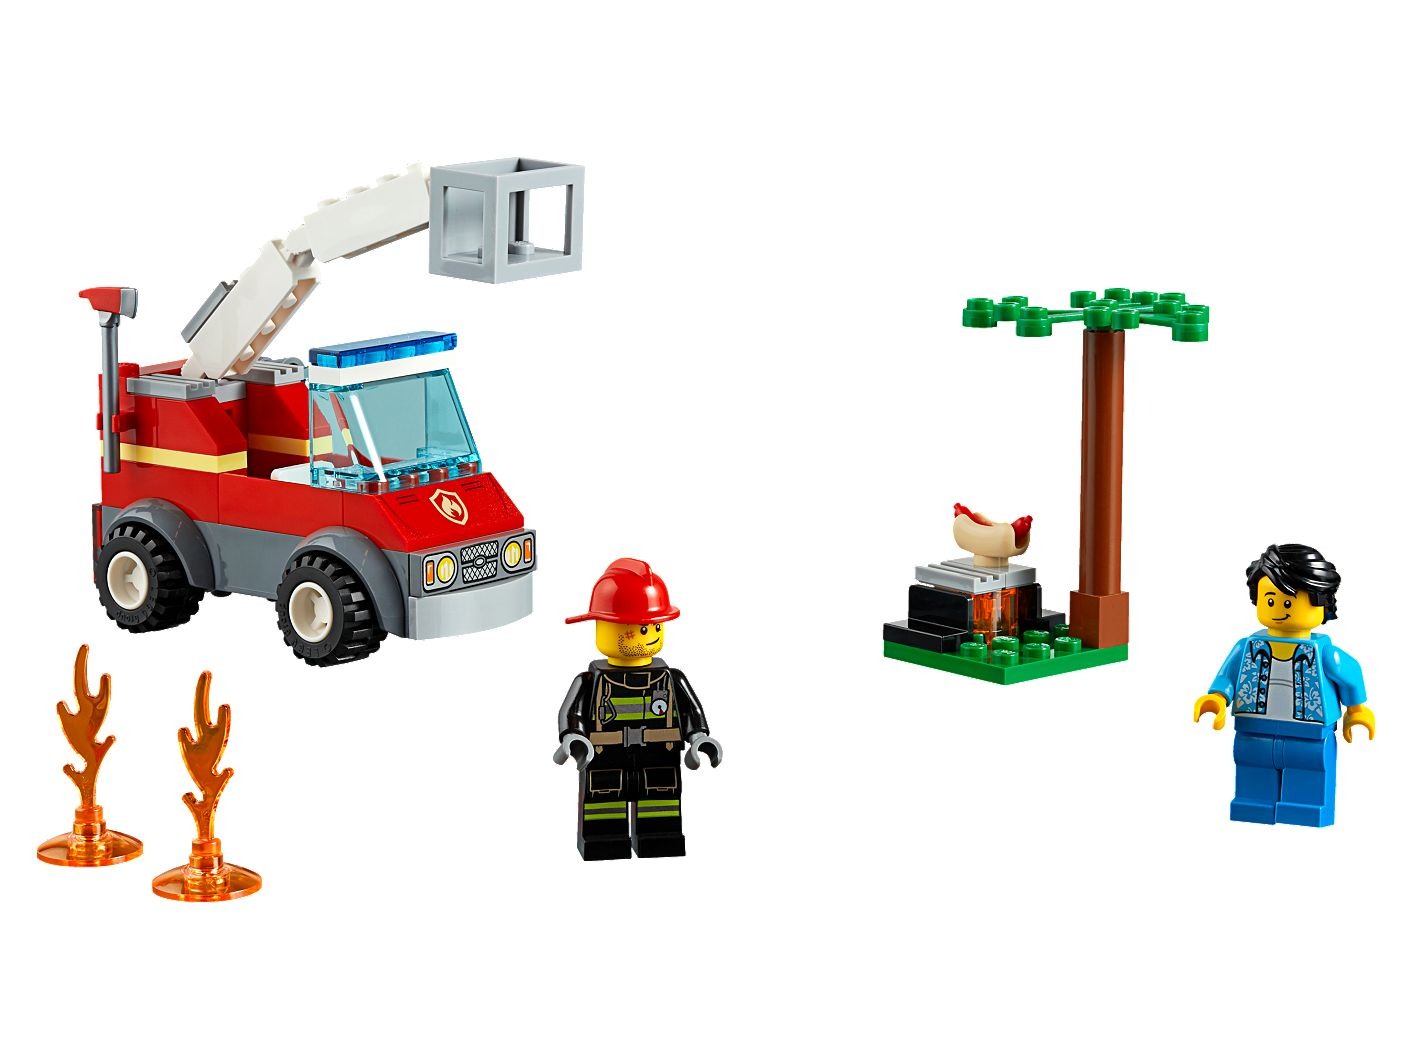 Barbecue Burn Out 60212 | City | Buy online at the Official LEGO® Shop US